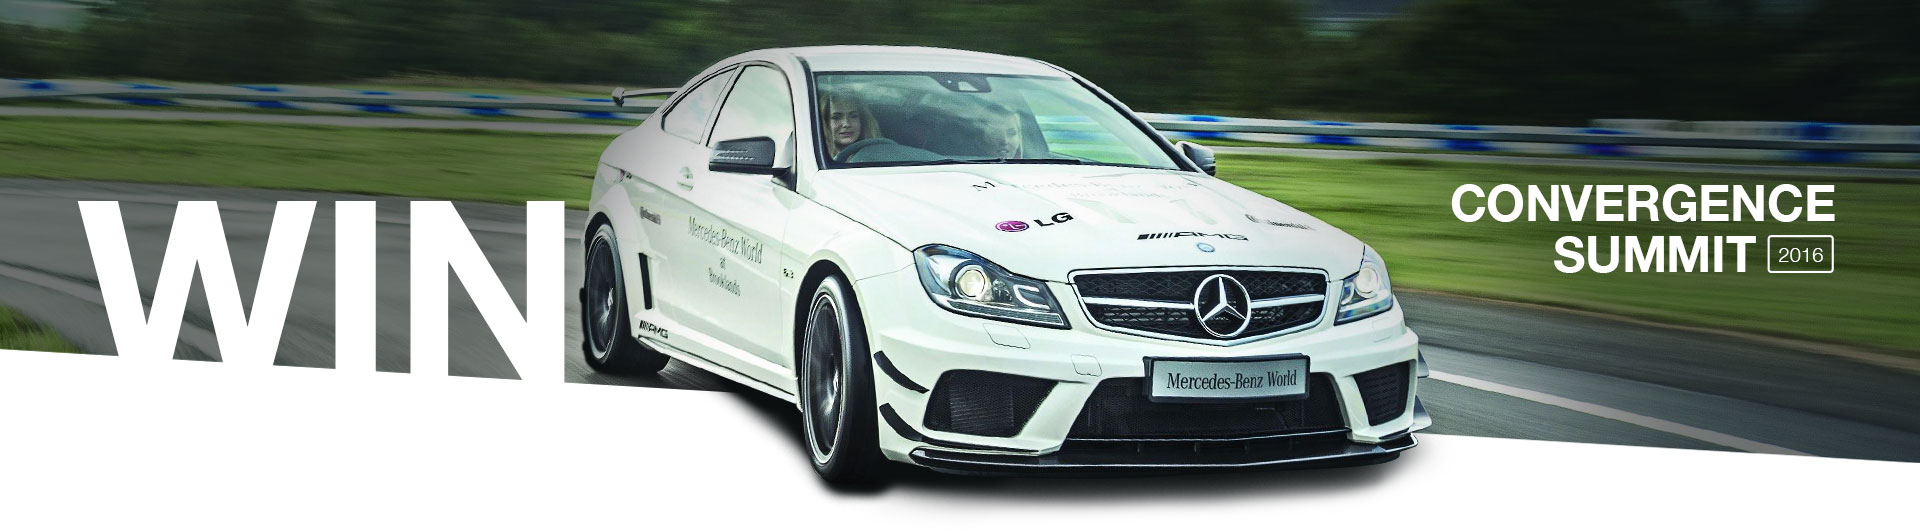 Win an AMG Performance Drive at Convergence Summit